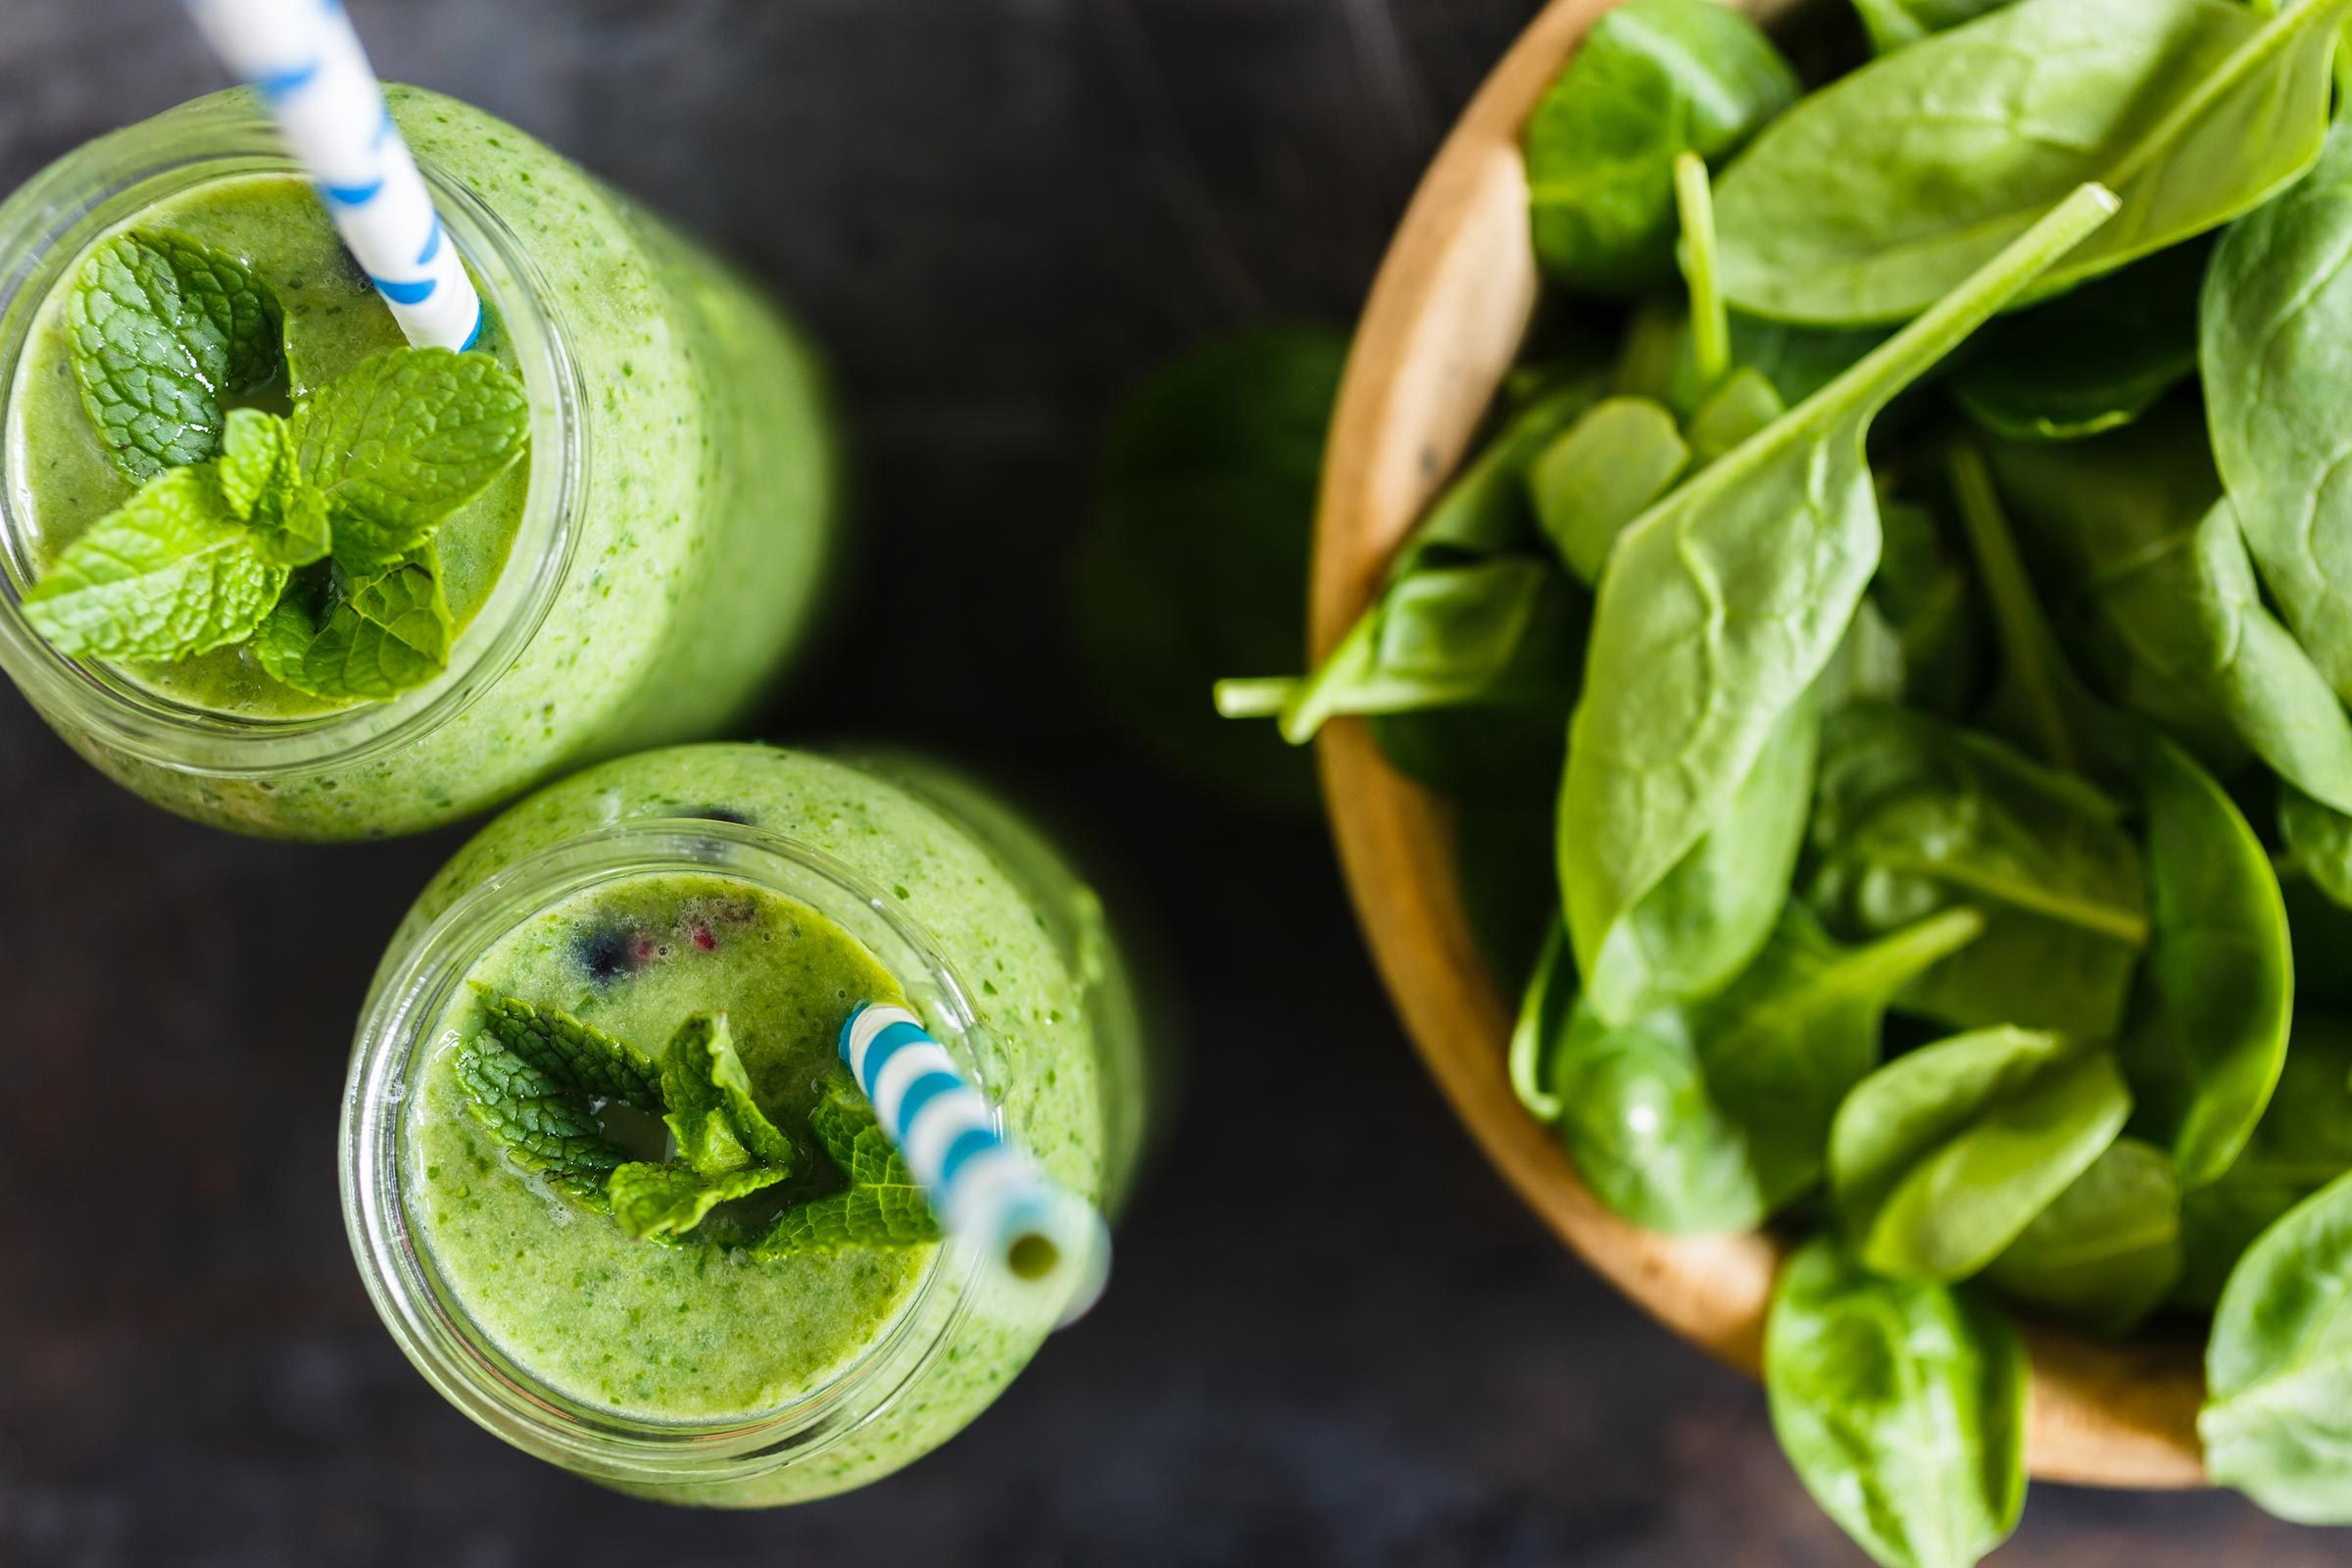 prepared meals nutritionists avoid | smoothie